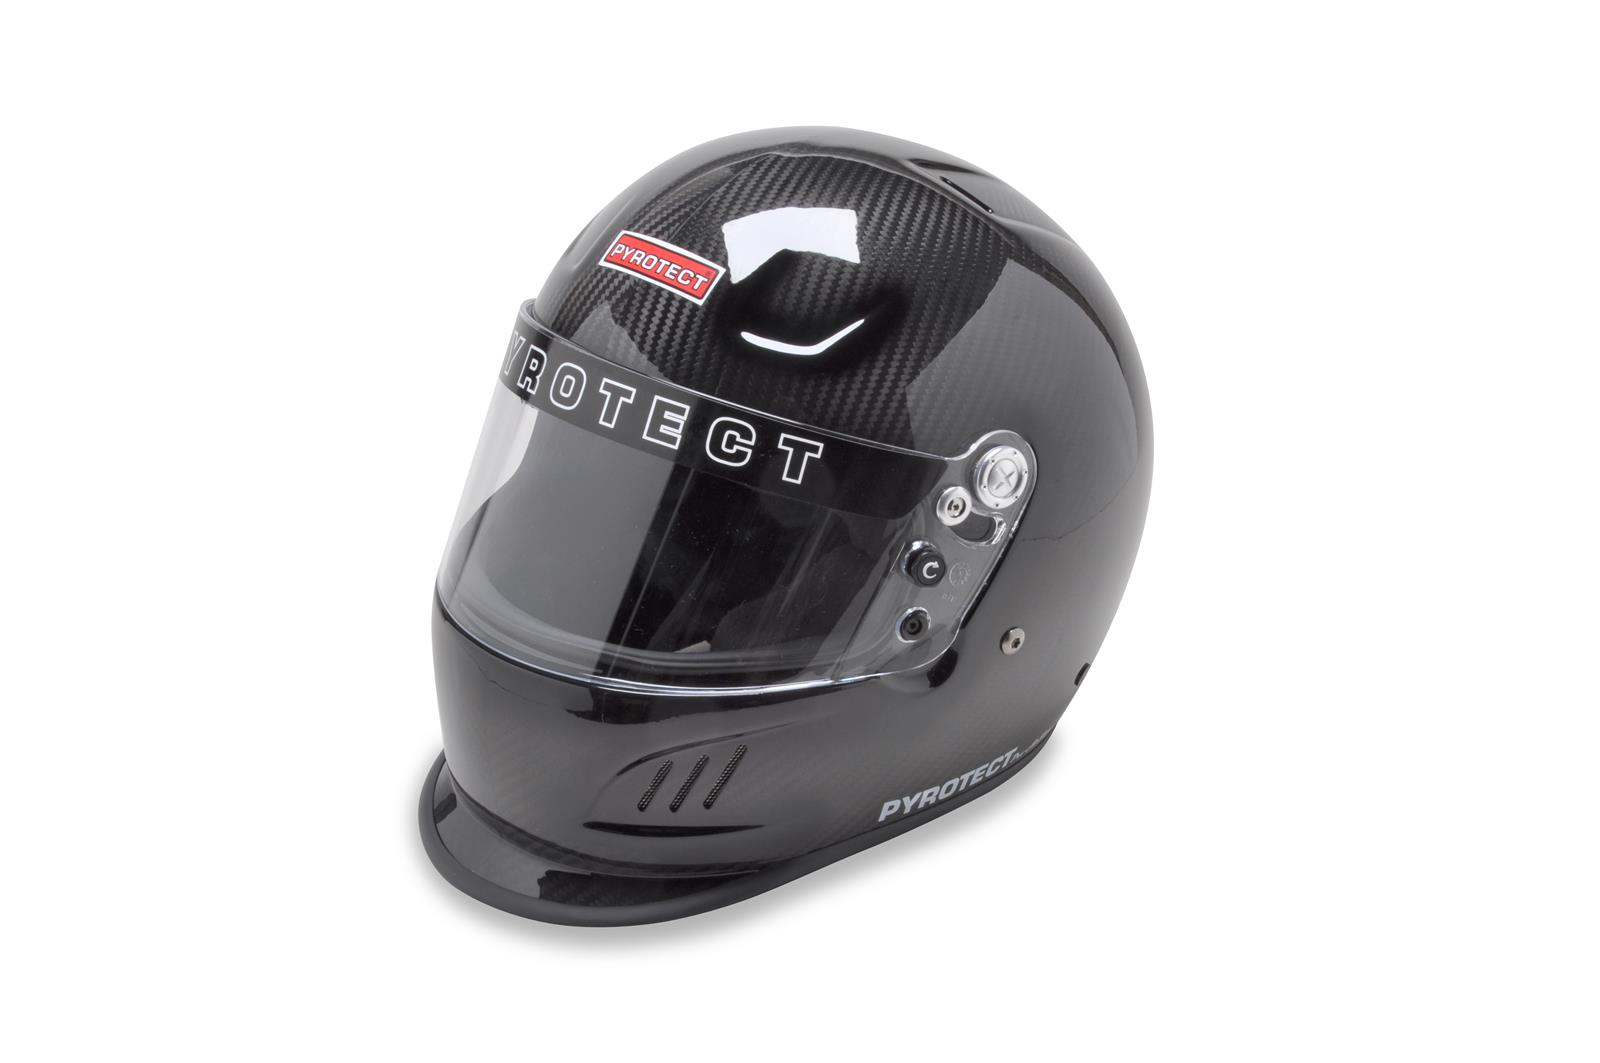 S M L XL - Snell SA2015 Pyrotect Pro Sport Duckbill Top Air Helmet All Sizes